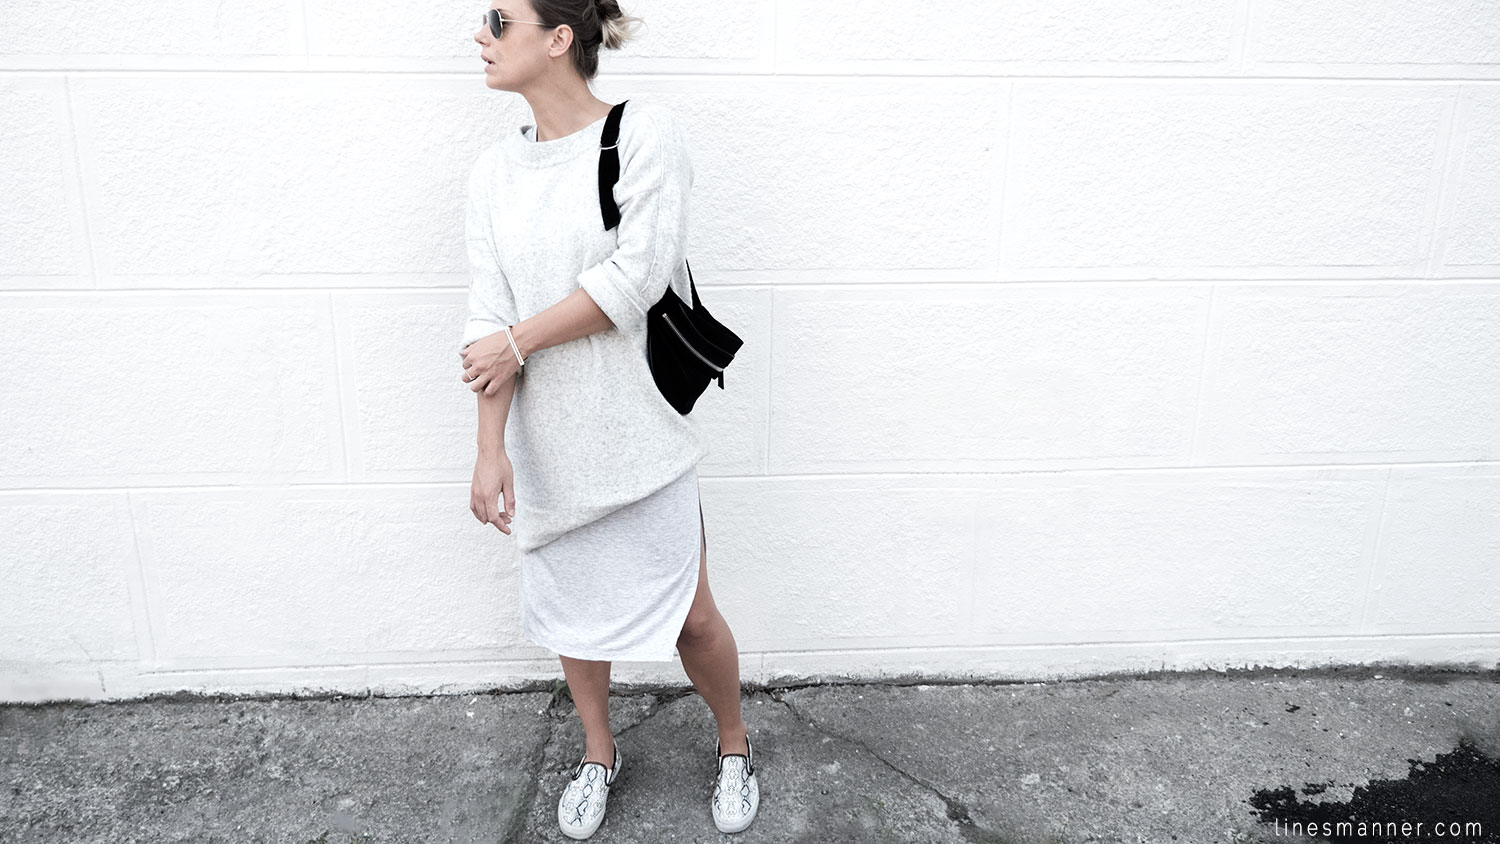 Lines-Manner-Fashion-Collaboration-The_Demeler-Monochrome-Grey_on_Grey-Fresh-Brightly-Outfit-Simplicity-Details-Trend-Minimalist-Flowy-Layering-Sleeves-Sweater_Dress-18